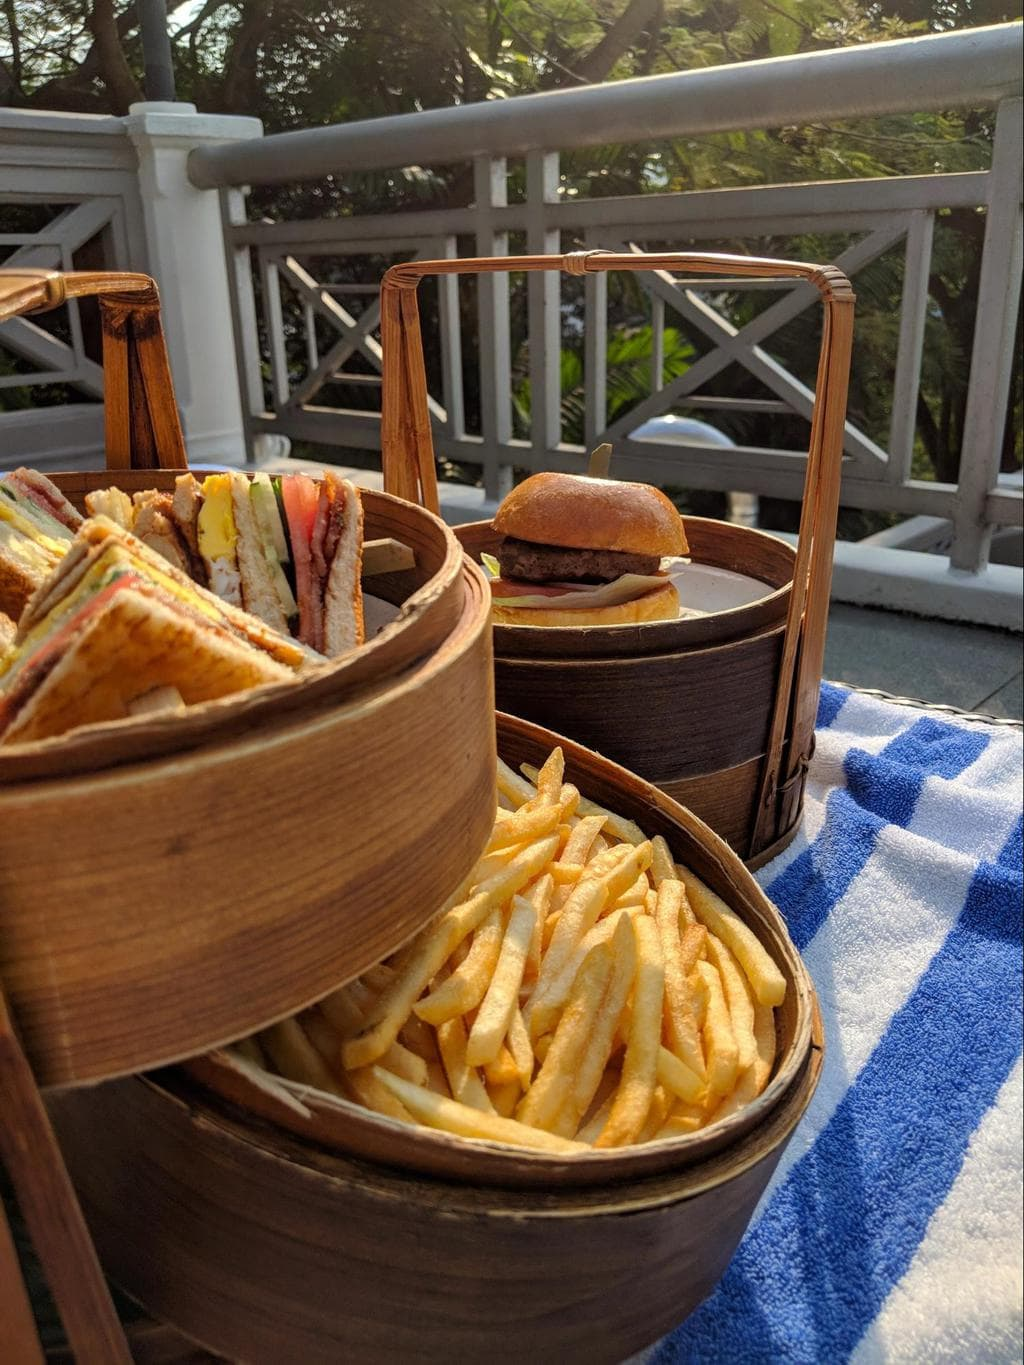 Tiffin style baskets at Hotel Fort Canning